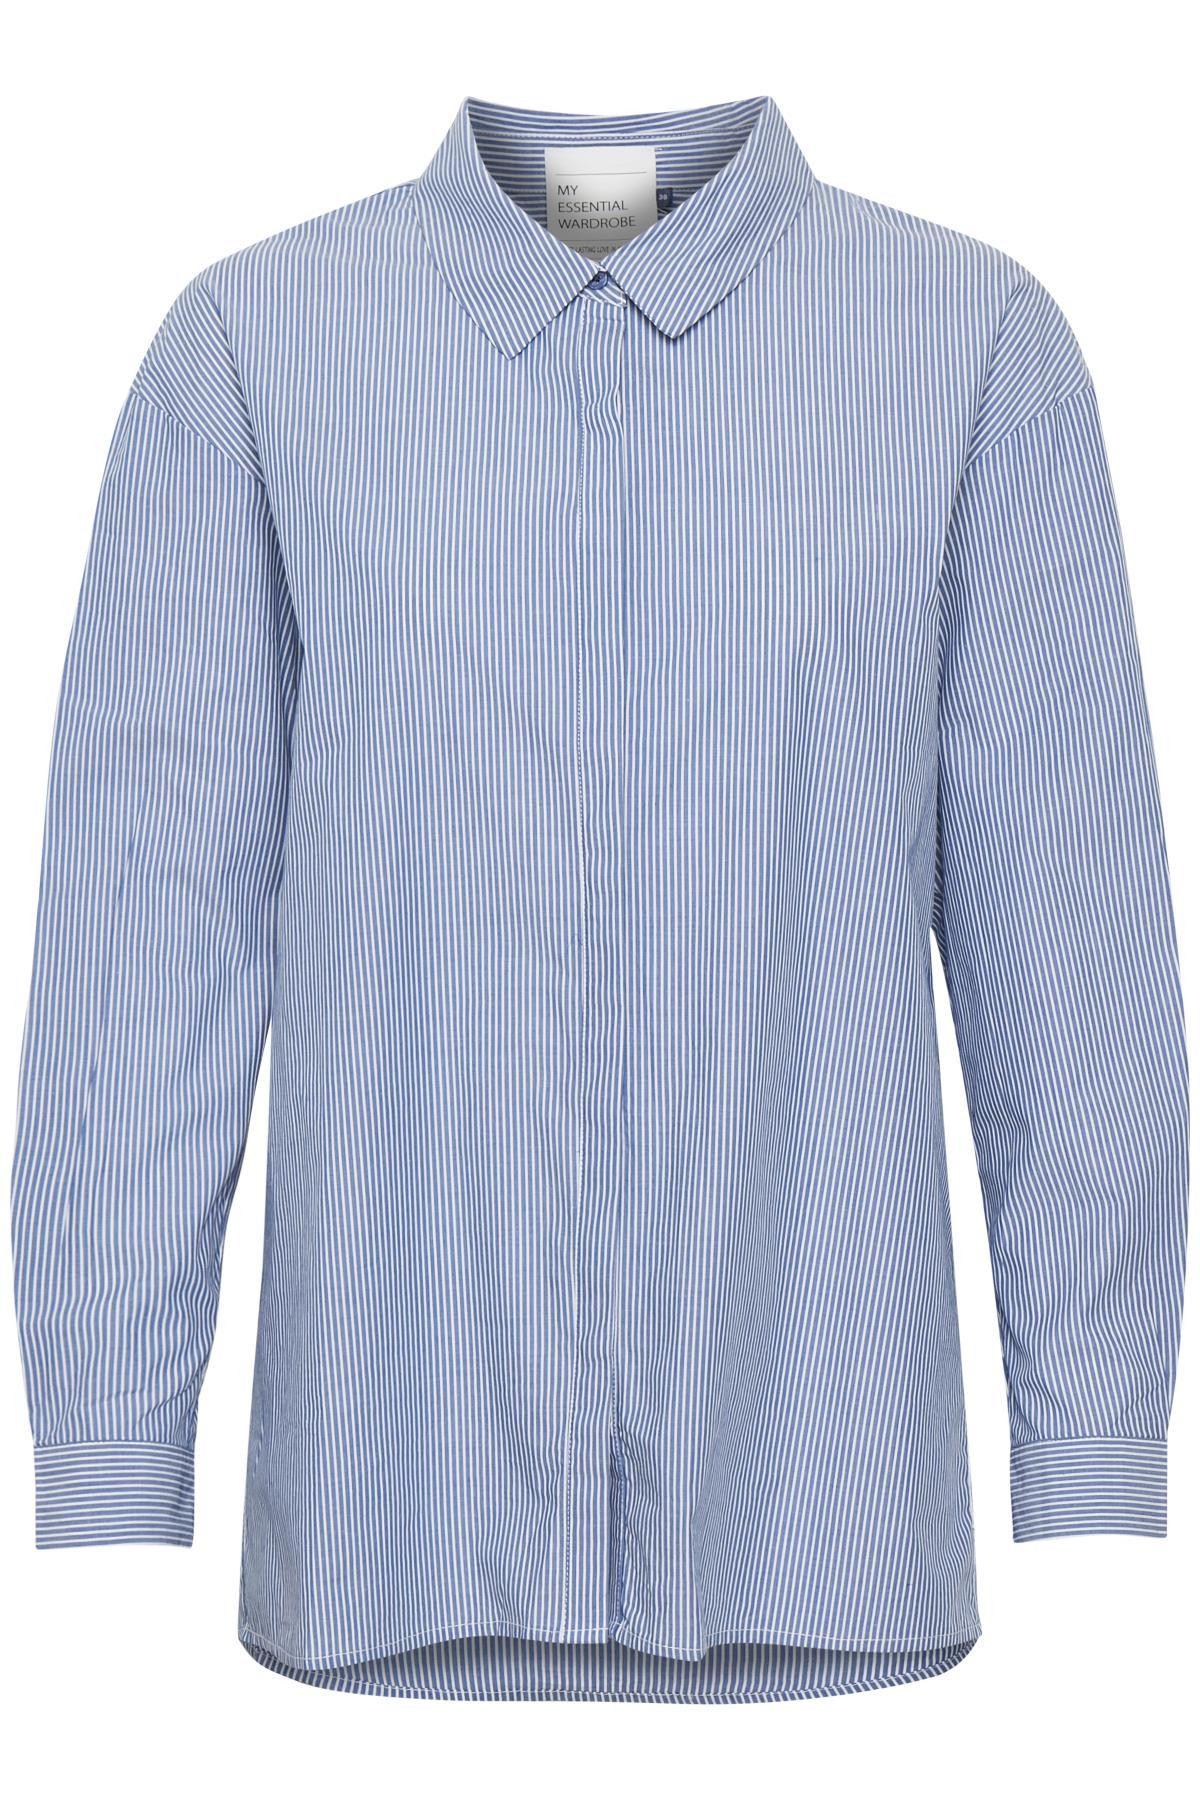 Image of   Denim Hunter 03 THE SHIRT 10702539 S (Striped Medium Blue 38076, 36)